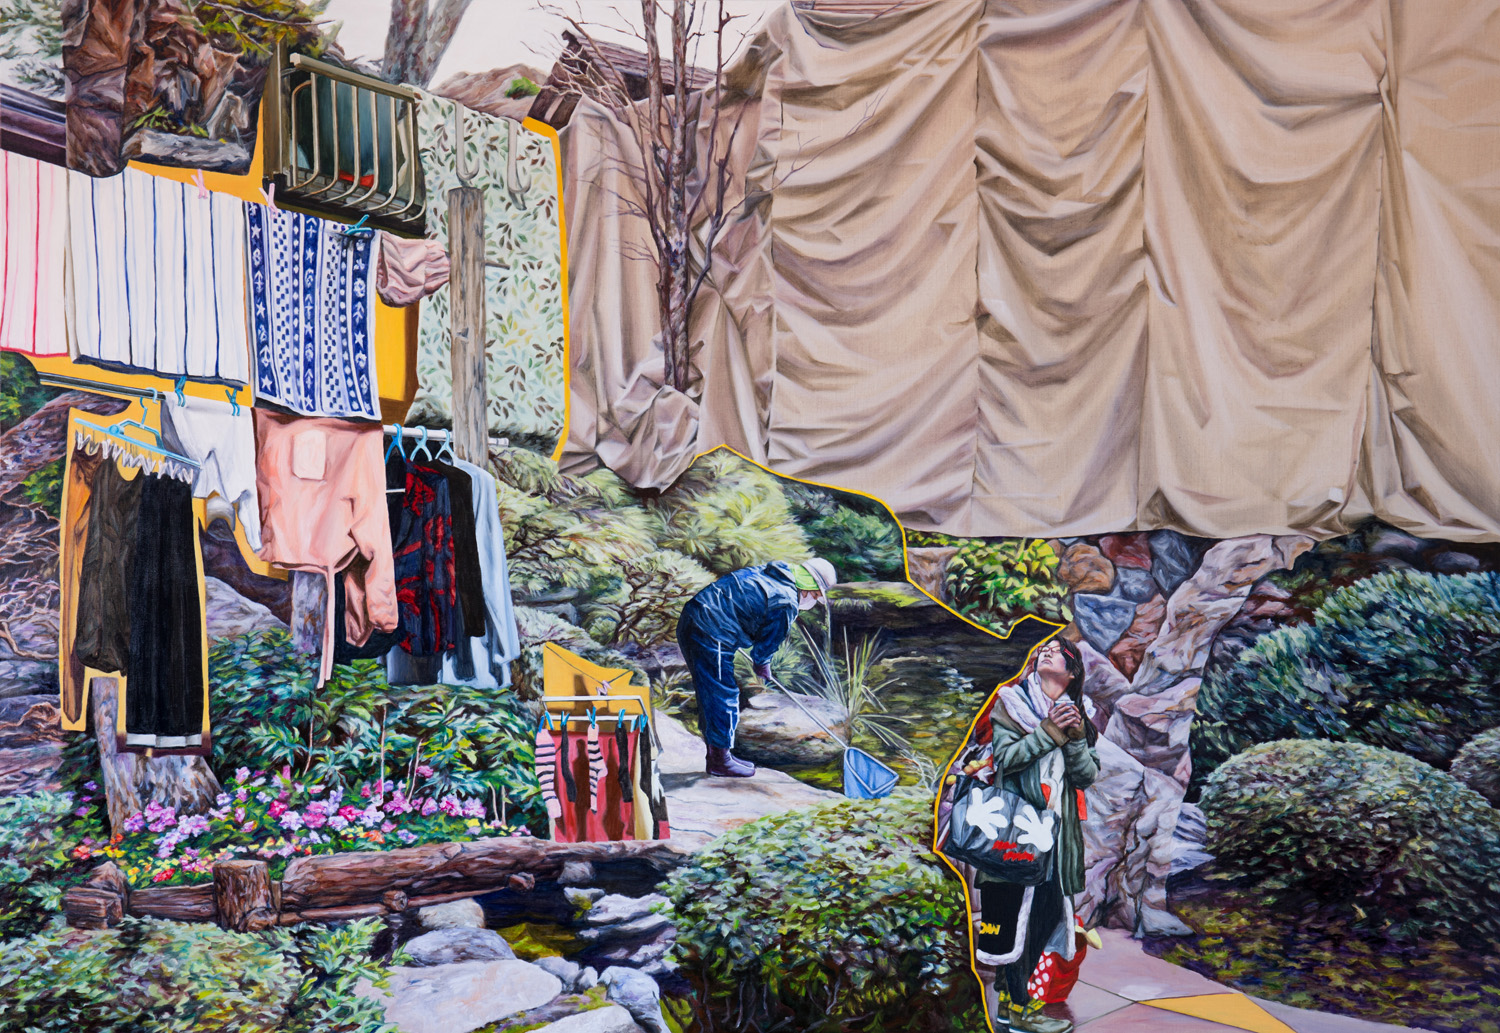 Kevin Chin, Out to Dry, 2015, oil on linen, 137 x 198 cm